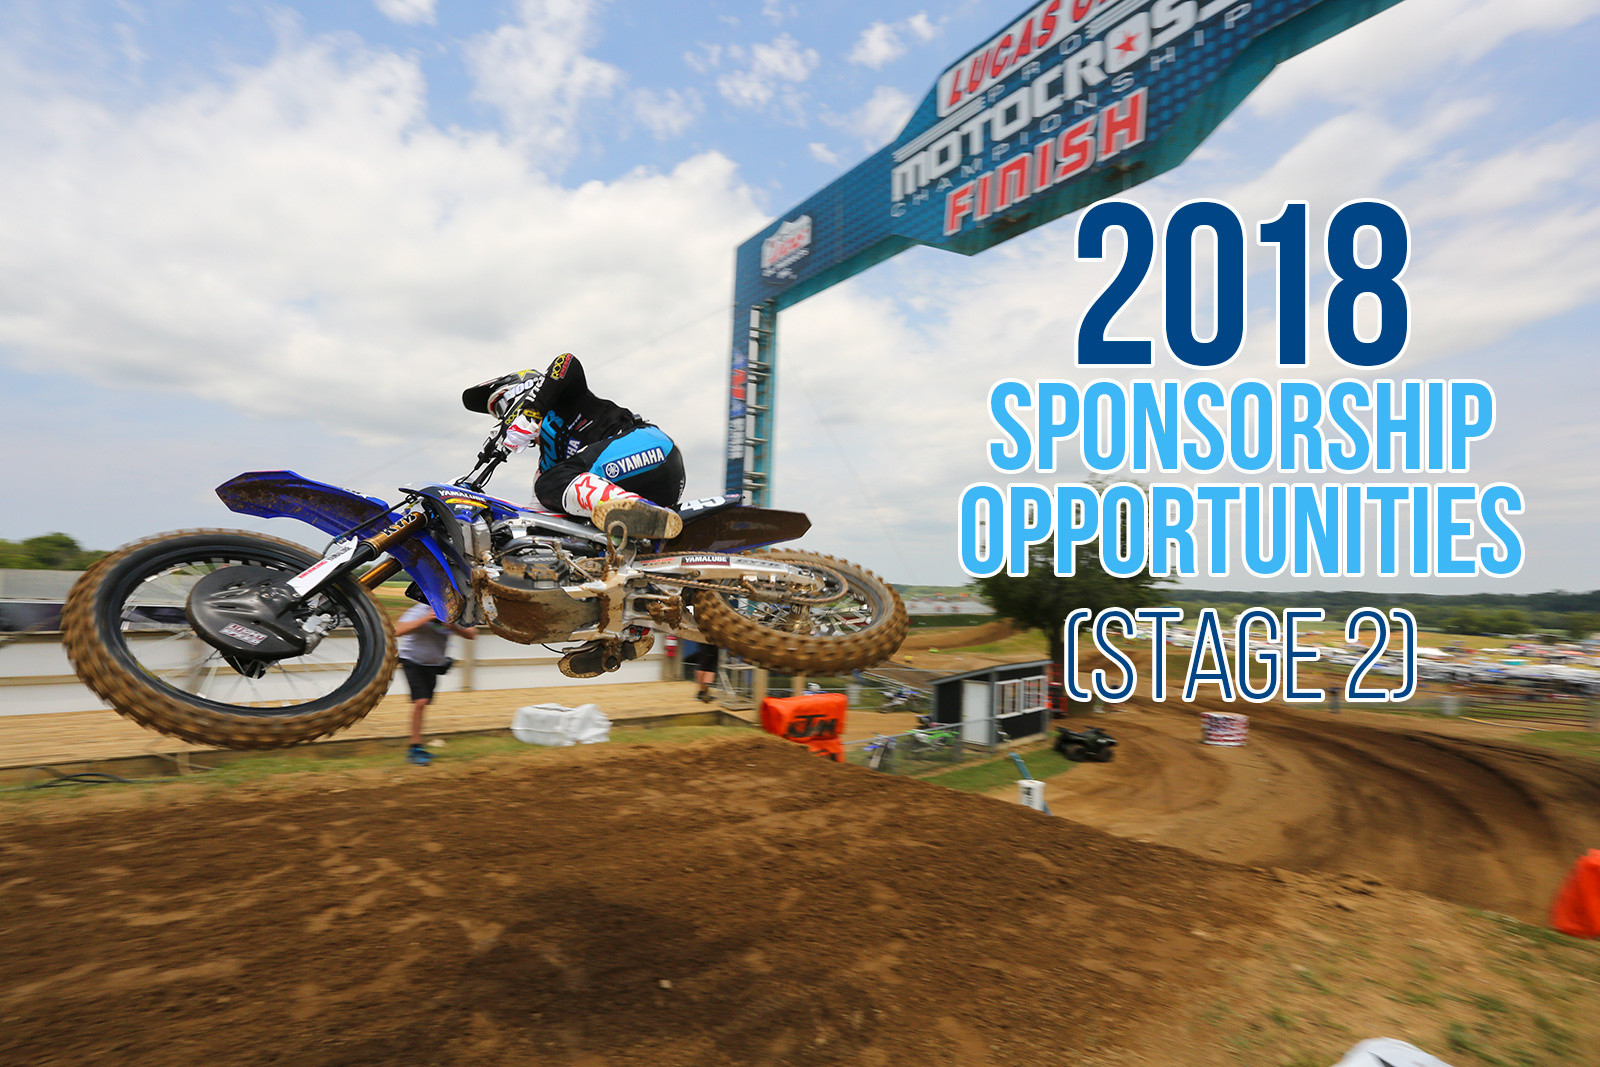 motocross sponsorship resume - Vaydile.euforic.co